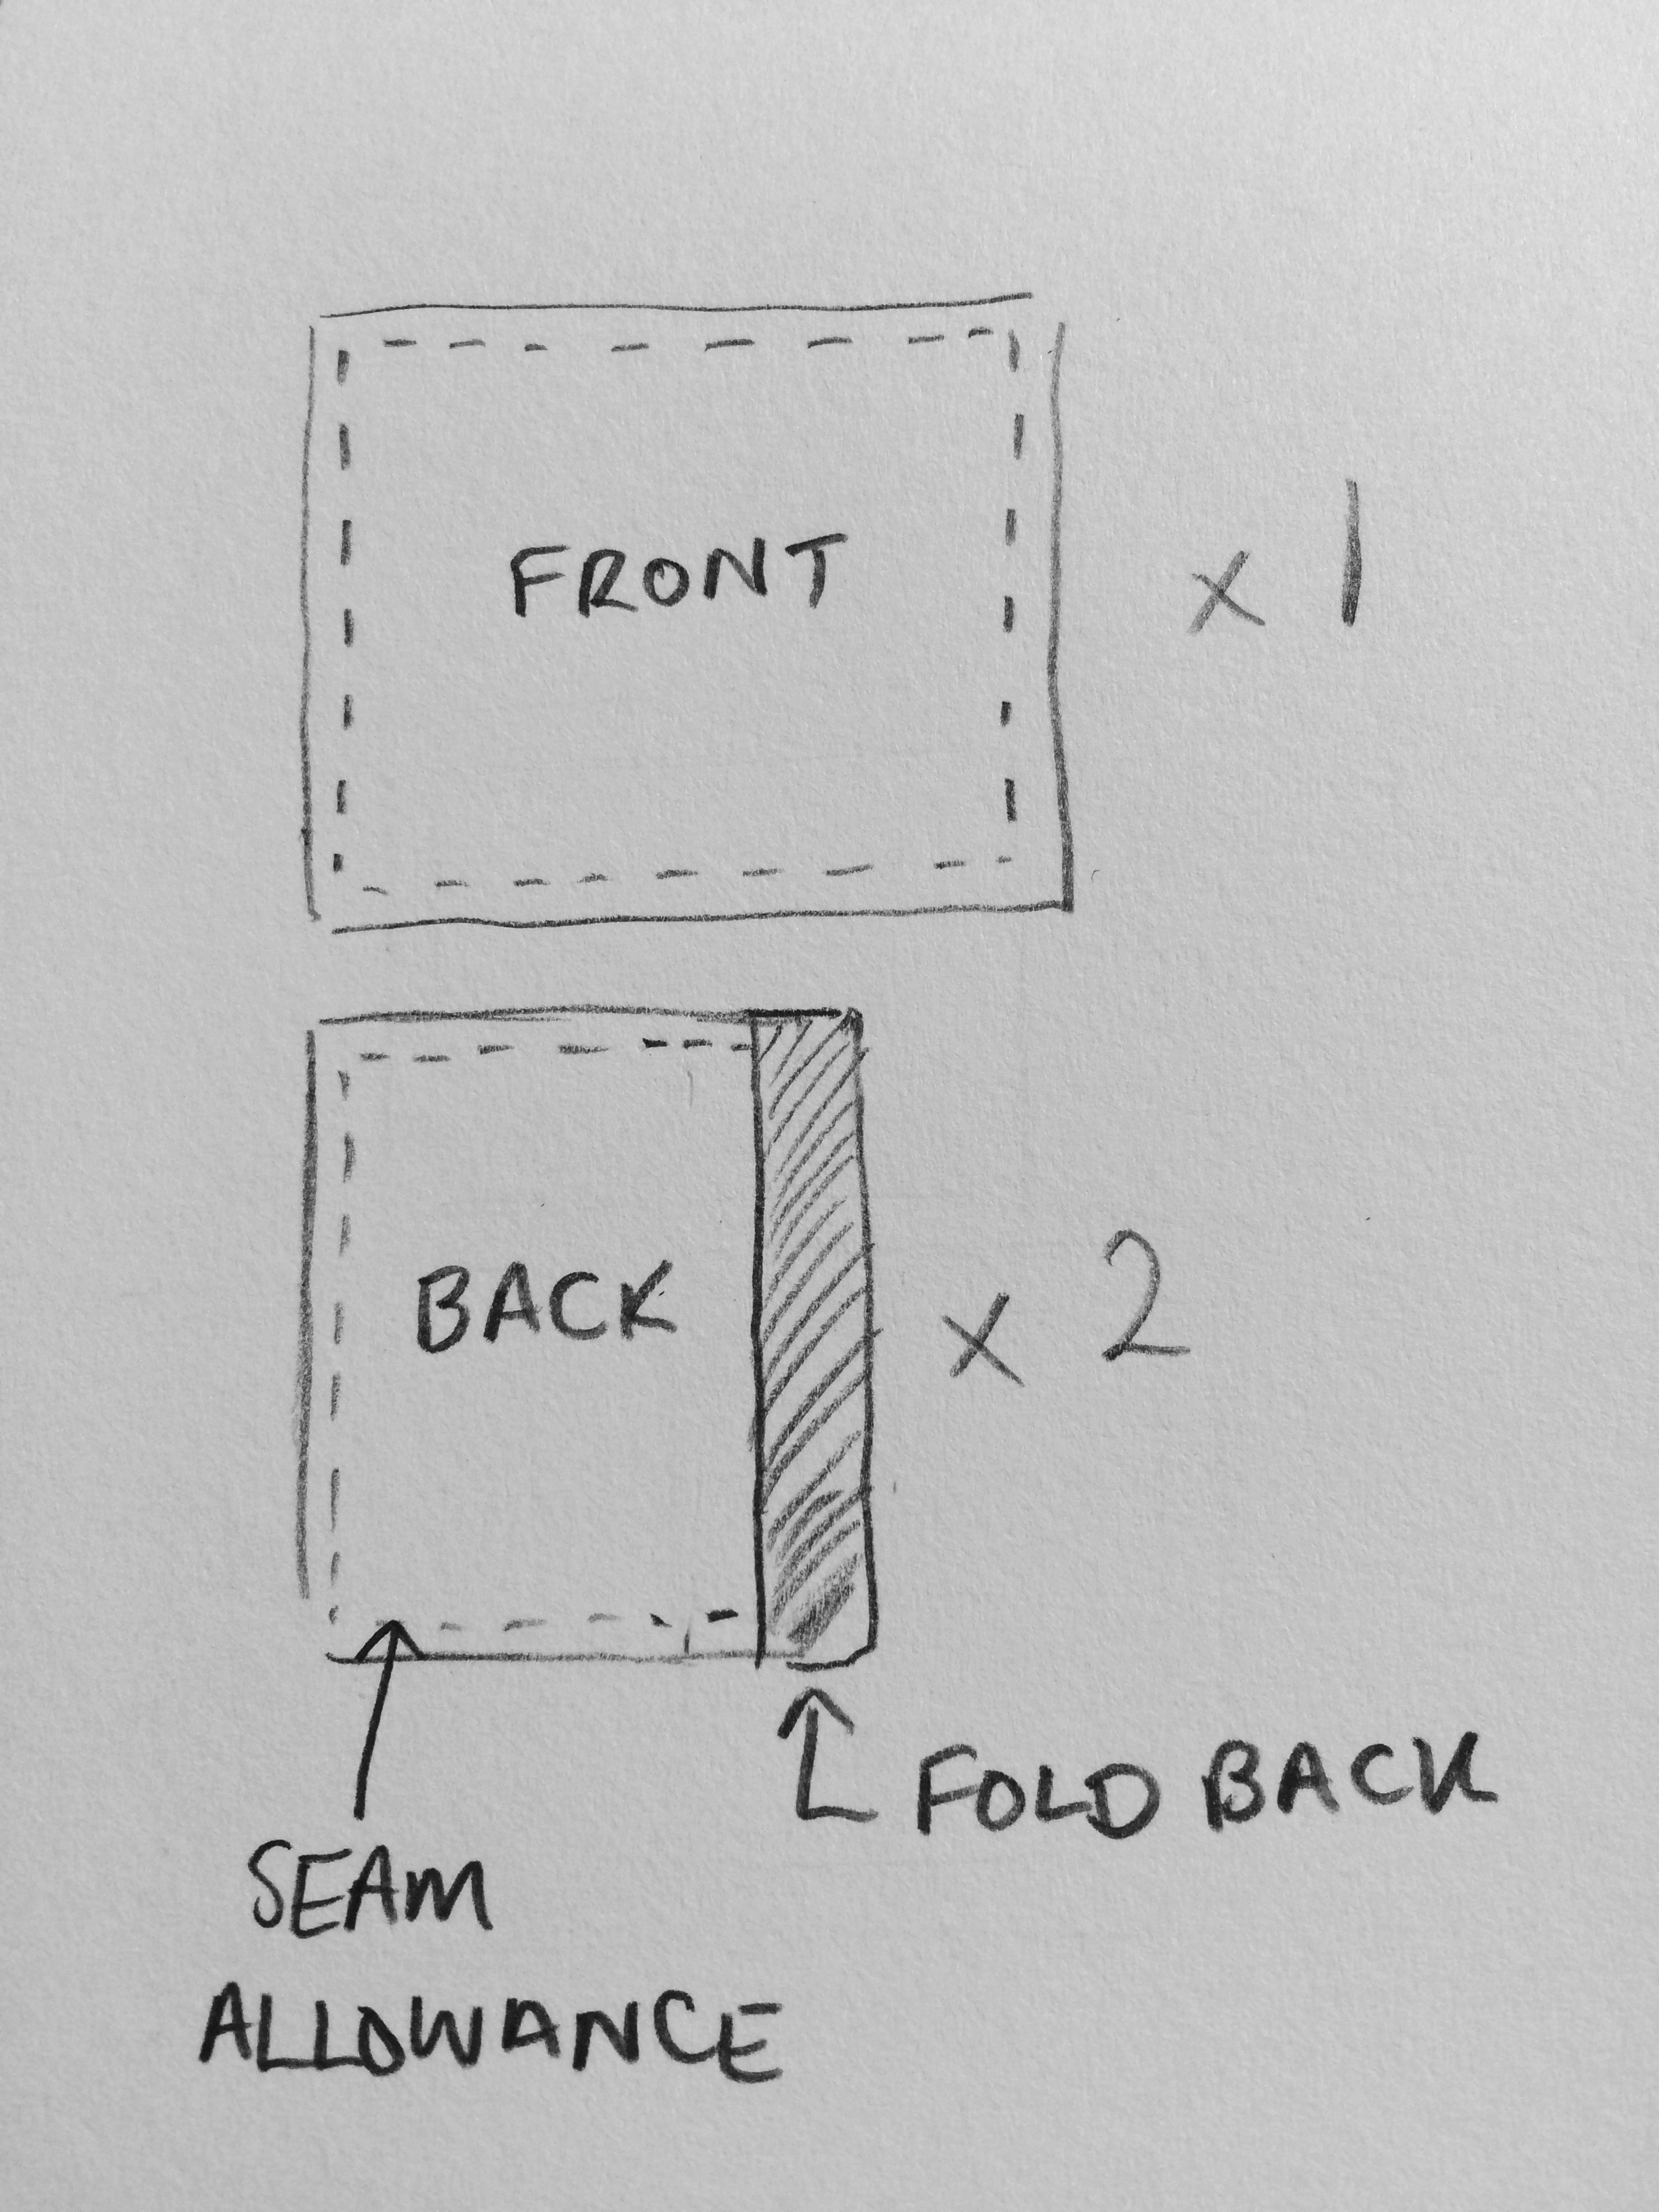 The simple pattern pieces, showing the seam allowance and fold back on the back pieces